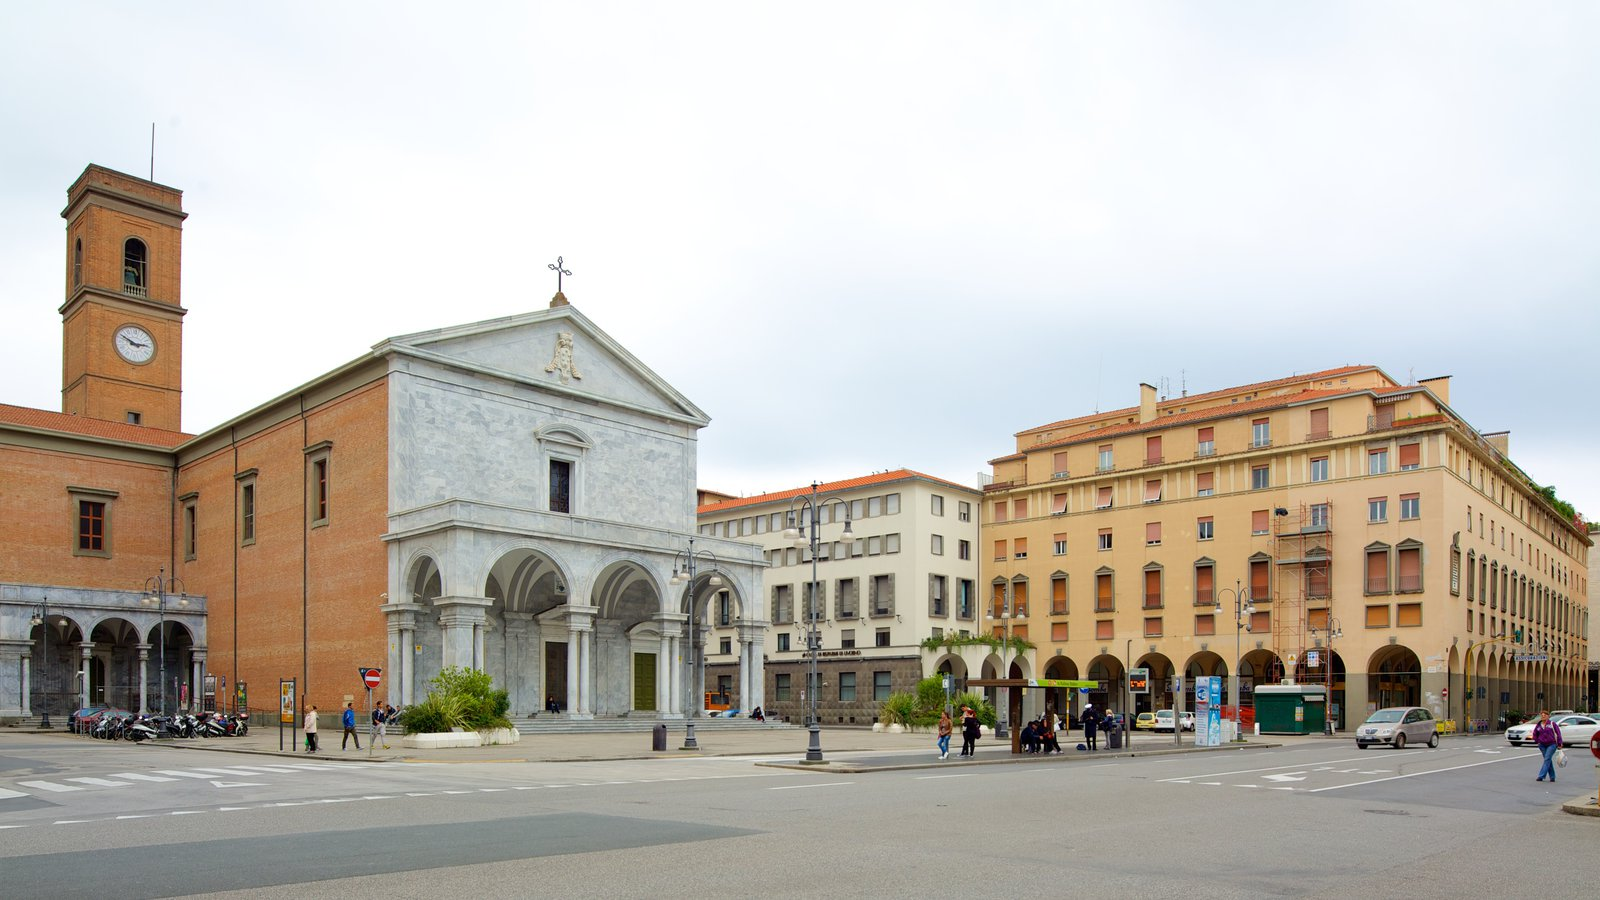 Palazzo Grande featuring heritage architecture, street scenes and a church or cathedral